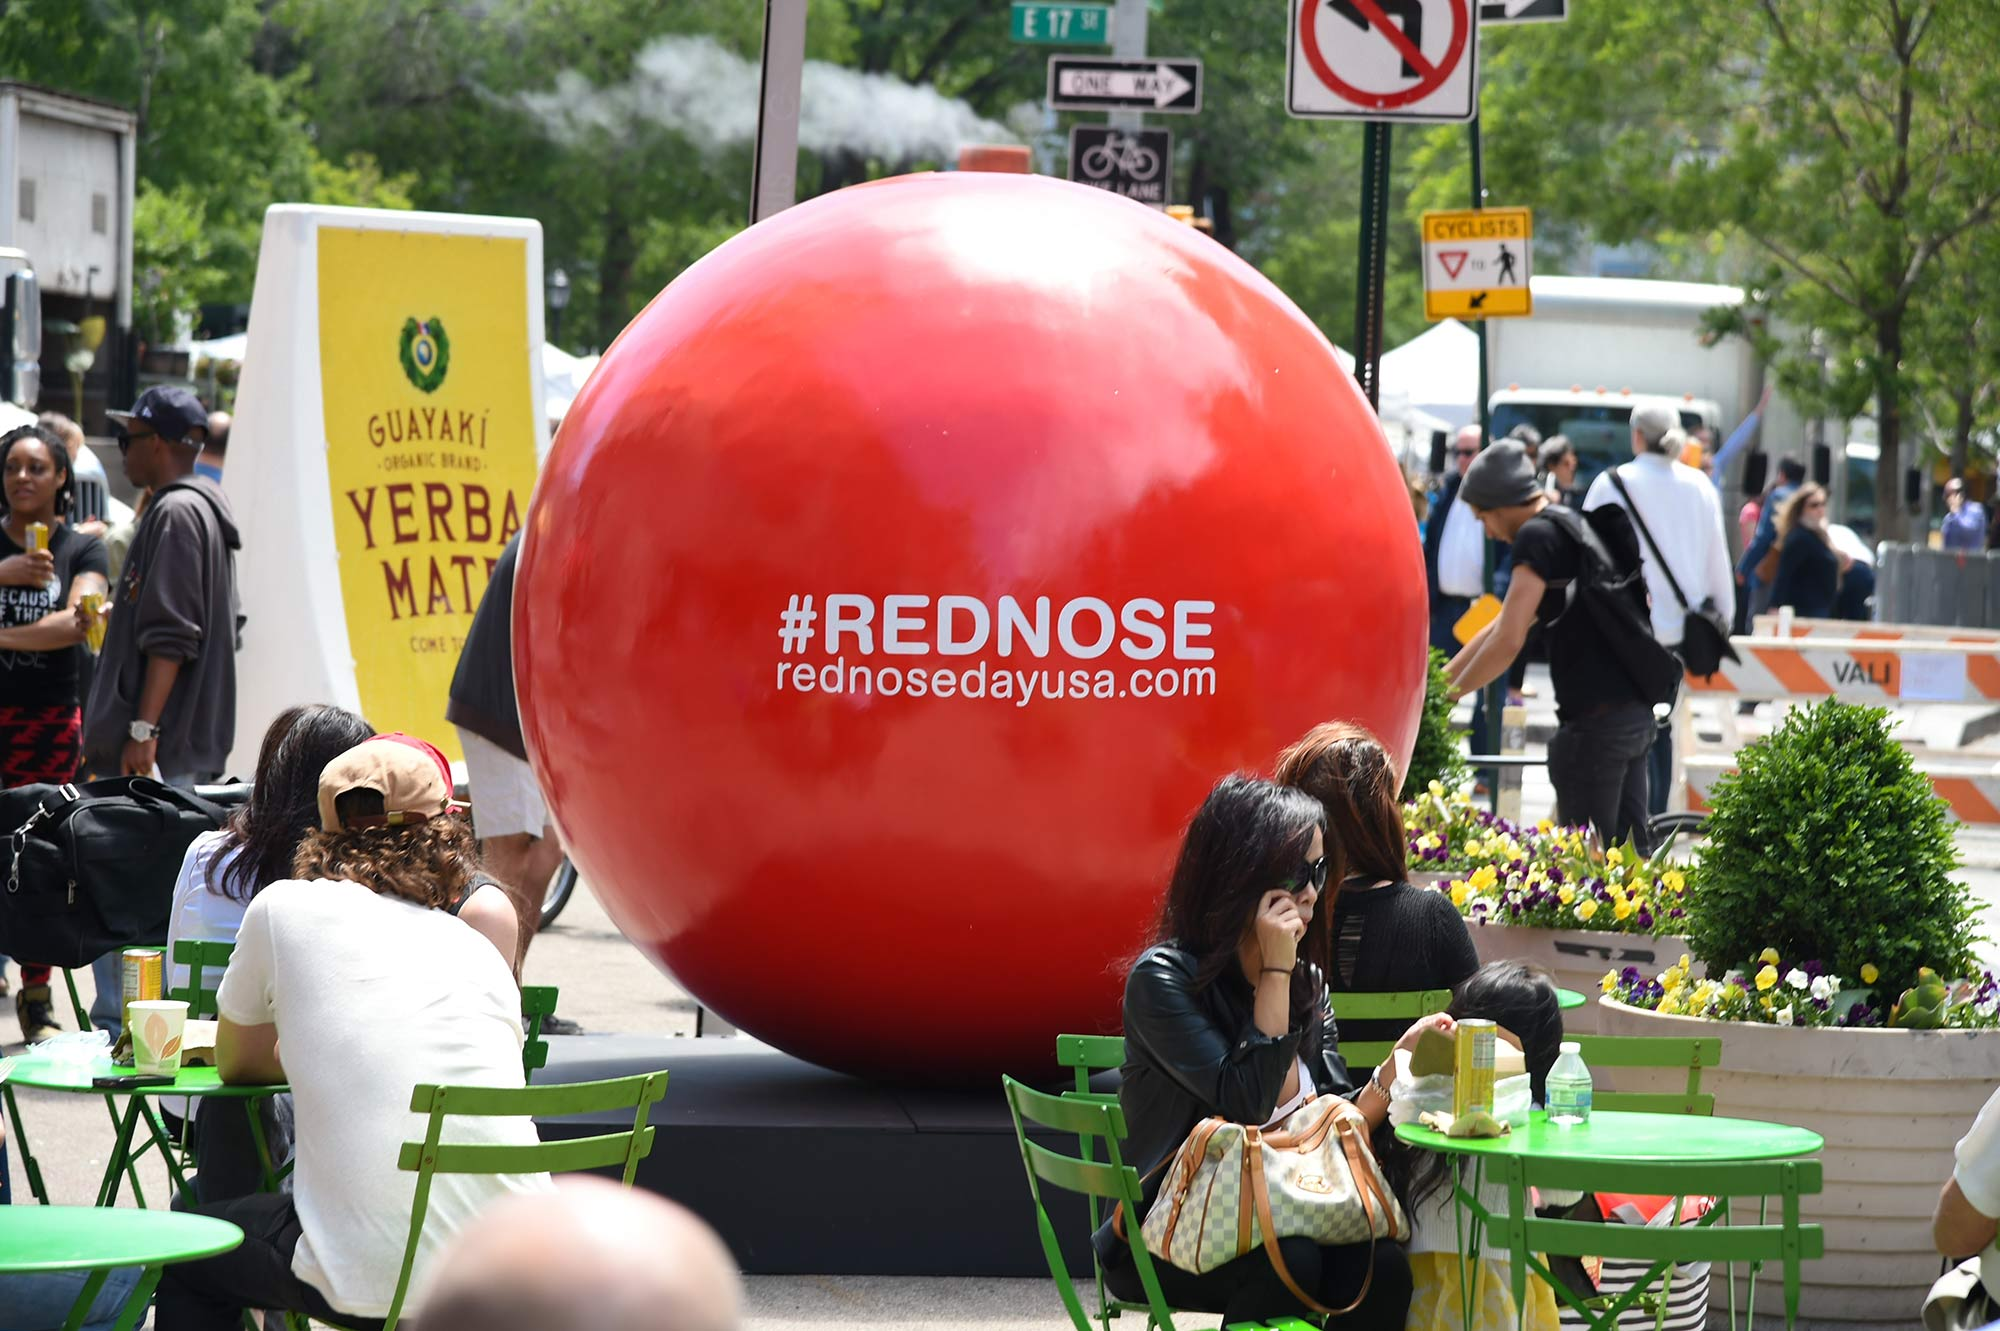 One of 5 larger-than-life Red Nose statues made for an unmistakeable sight in Union Square.